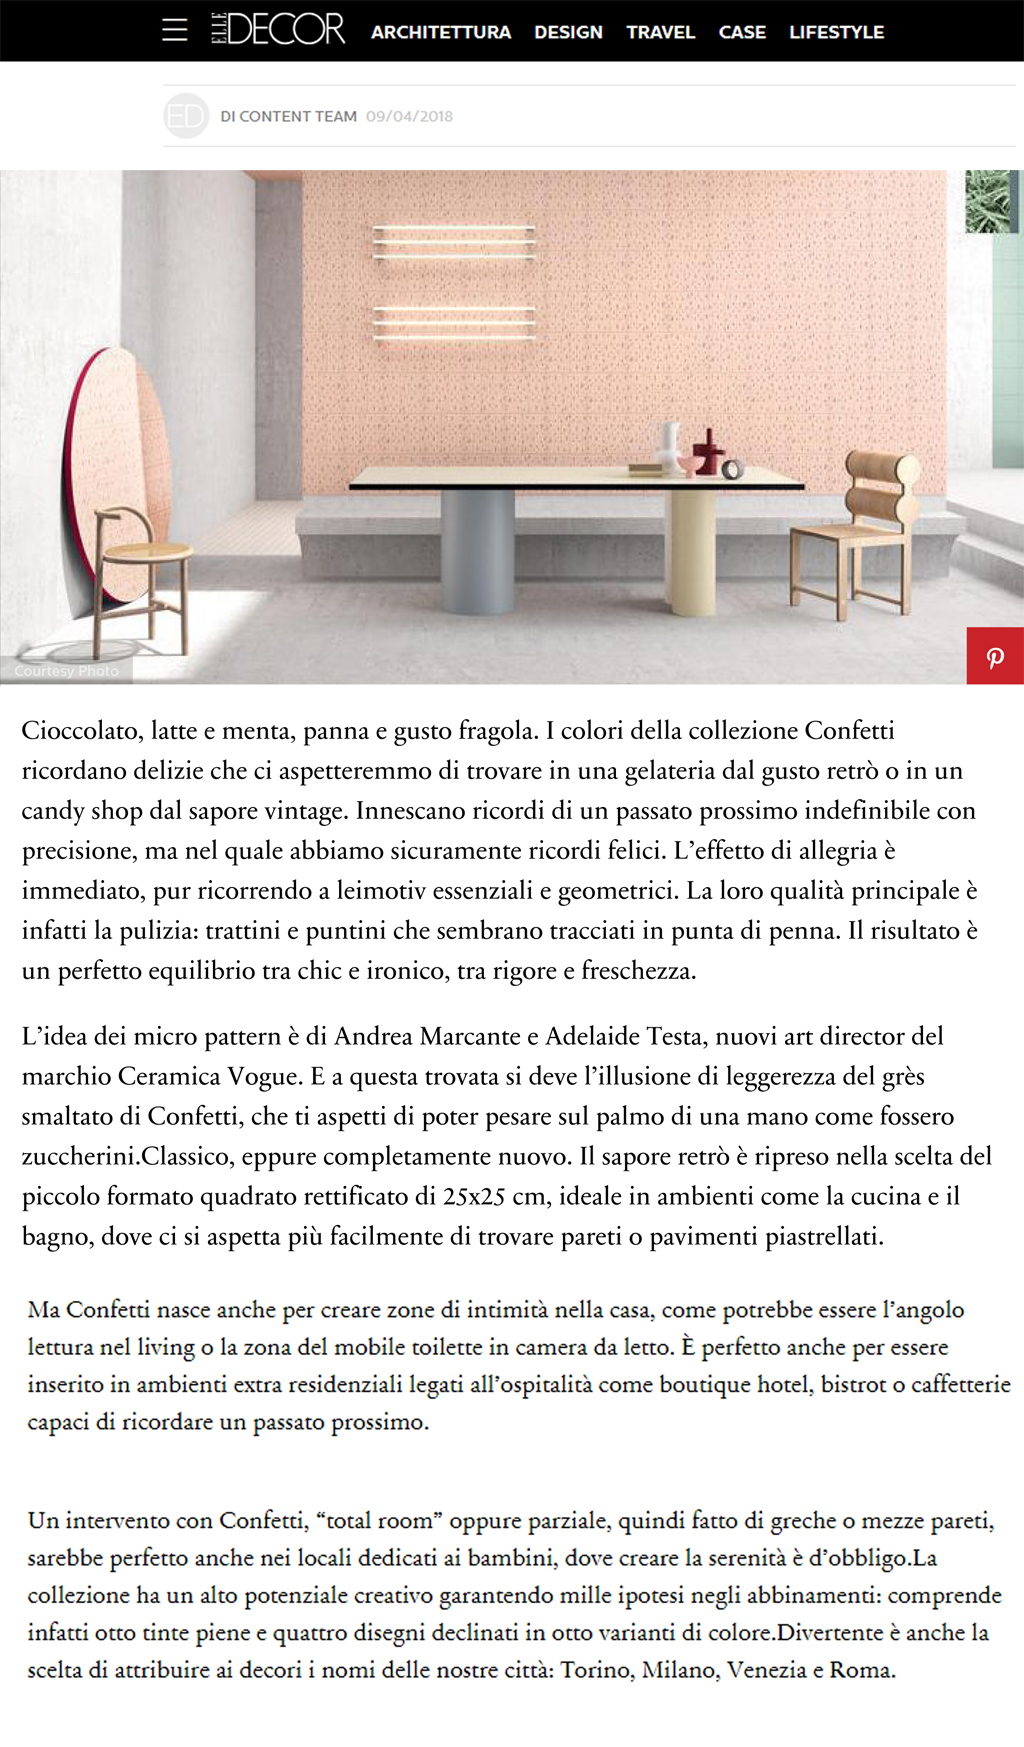 terzo piano images elle decor italy confetti vogue art direction marcante testa 01